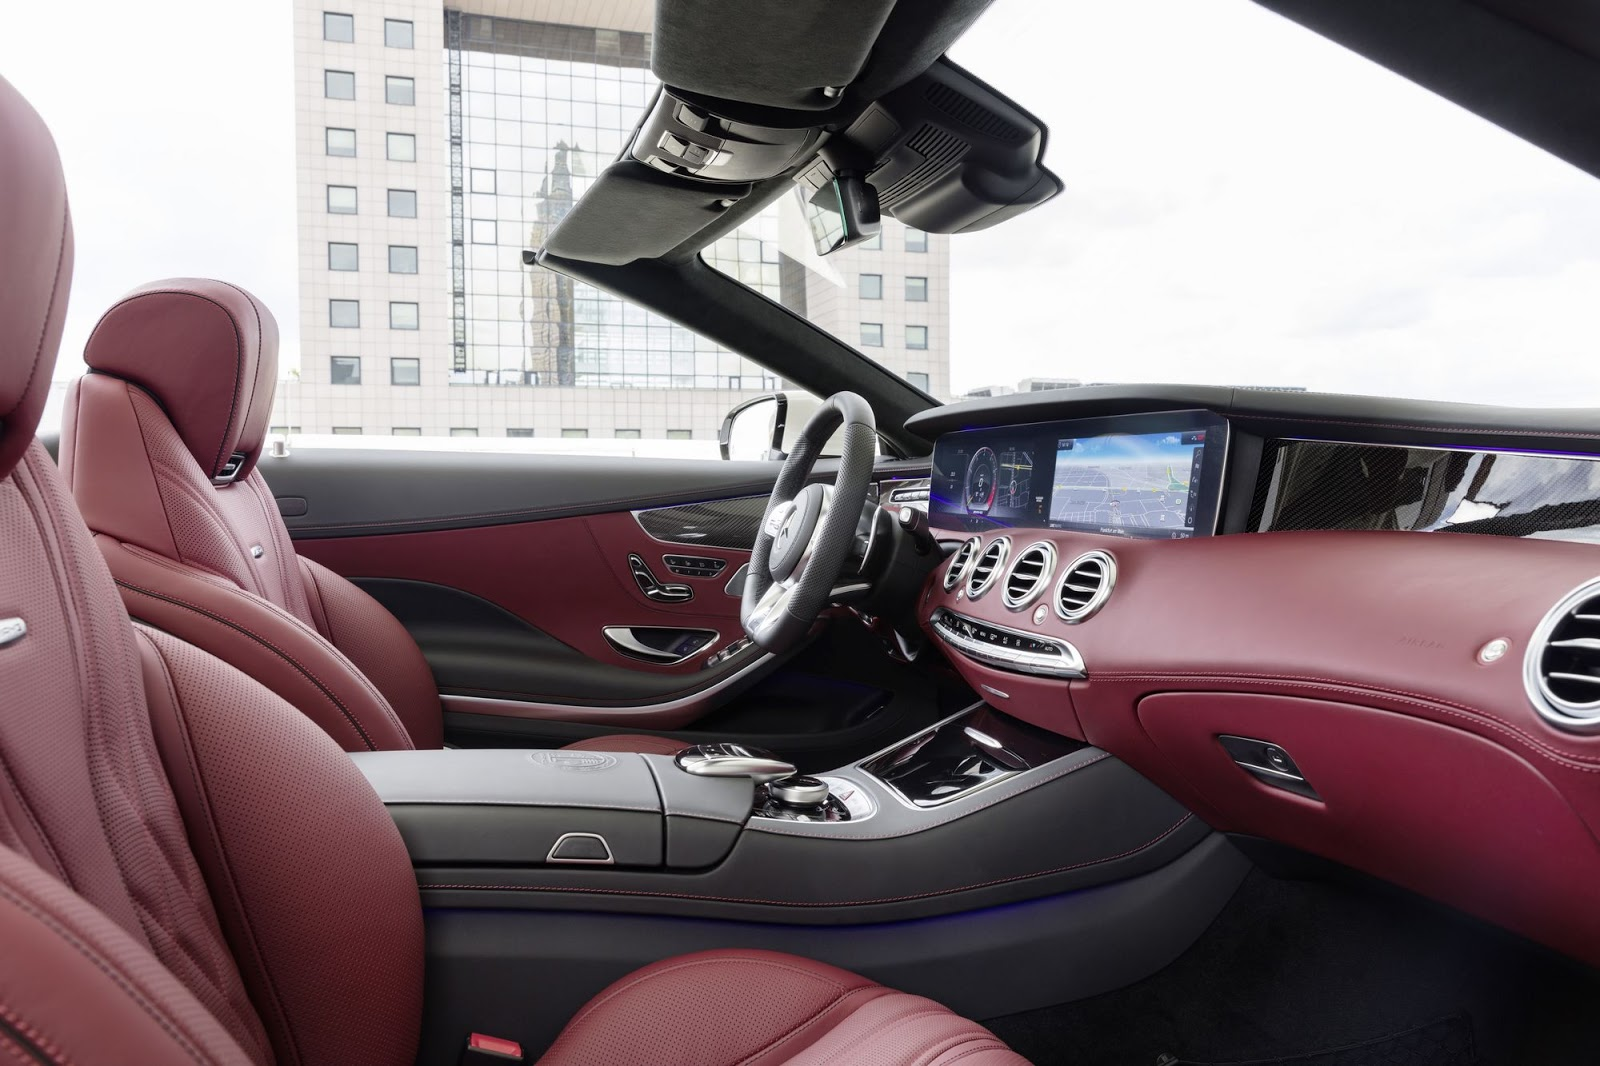 Mercedes-AMG S 63 4MATIC+ Cabriolet, 2017. Interieur: designo Leder Exklusiv Nappa AMG bengalrot/schwarz. Exterieur: designo diamantweiß bright;(Kraftstoffverbrauch kombiniert: 10,1 l/100 km; CO2-Emissionen kombiniert: 229 g/km*